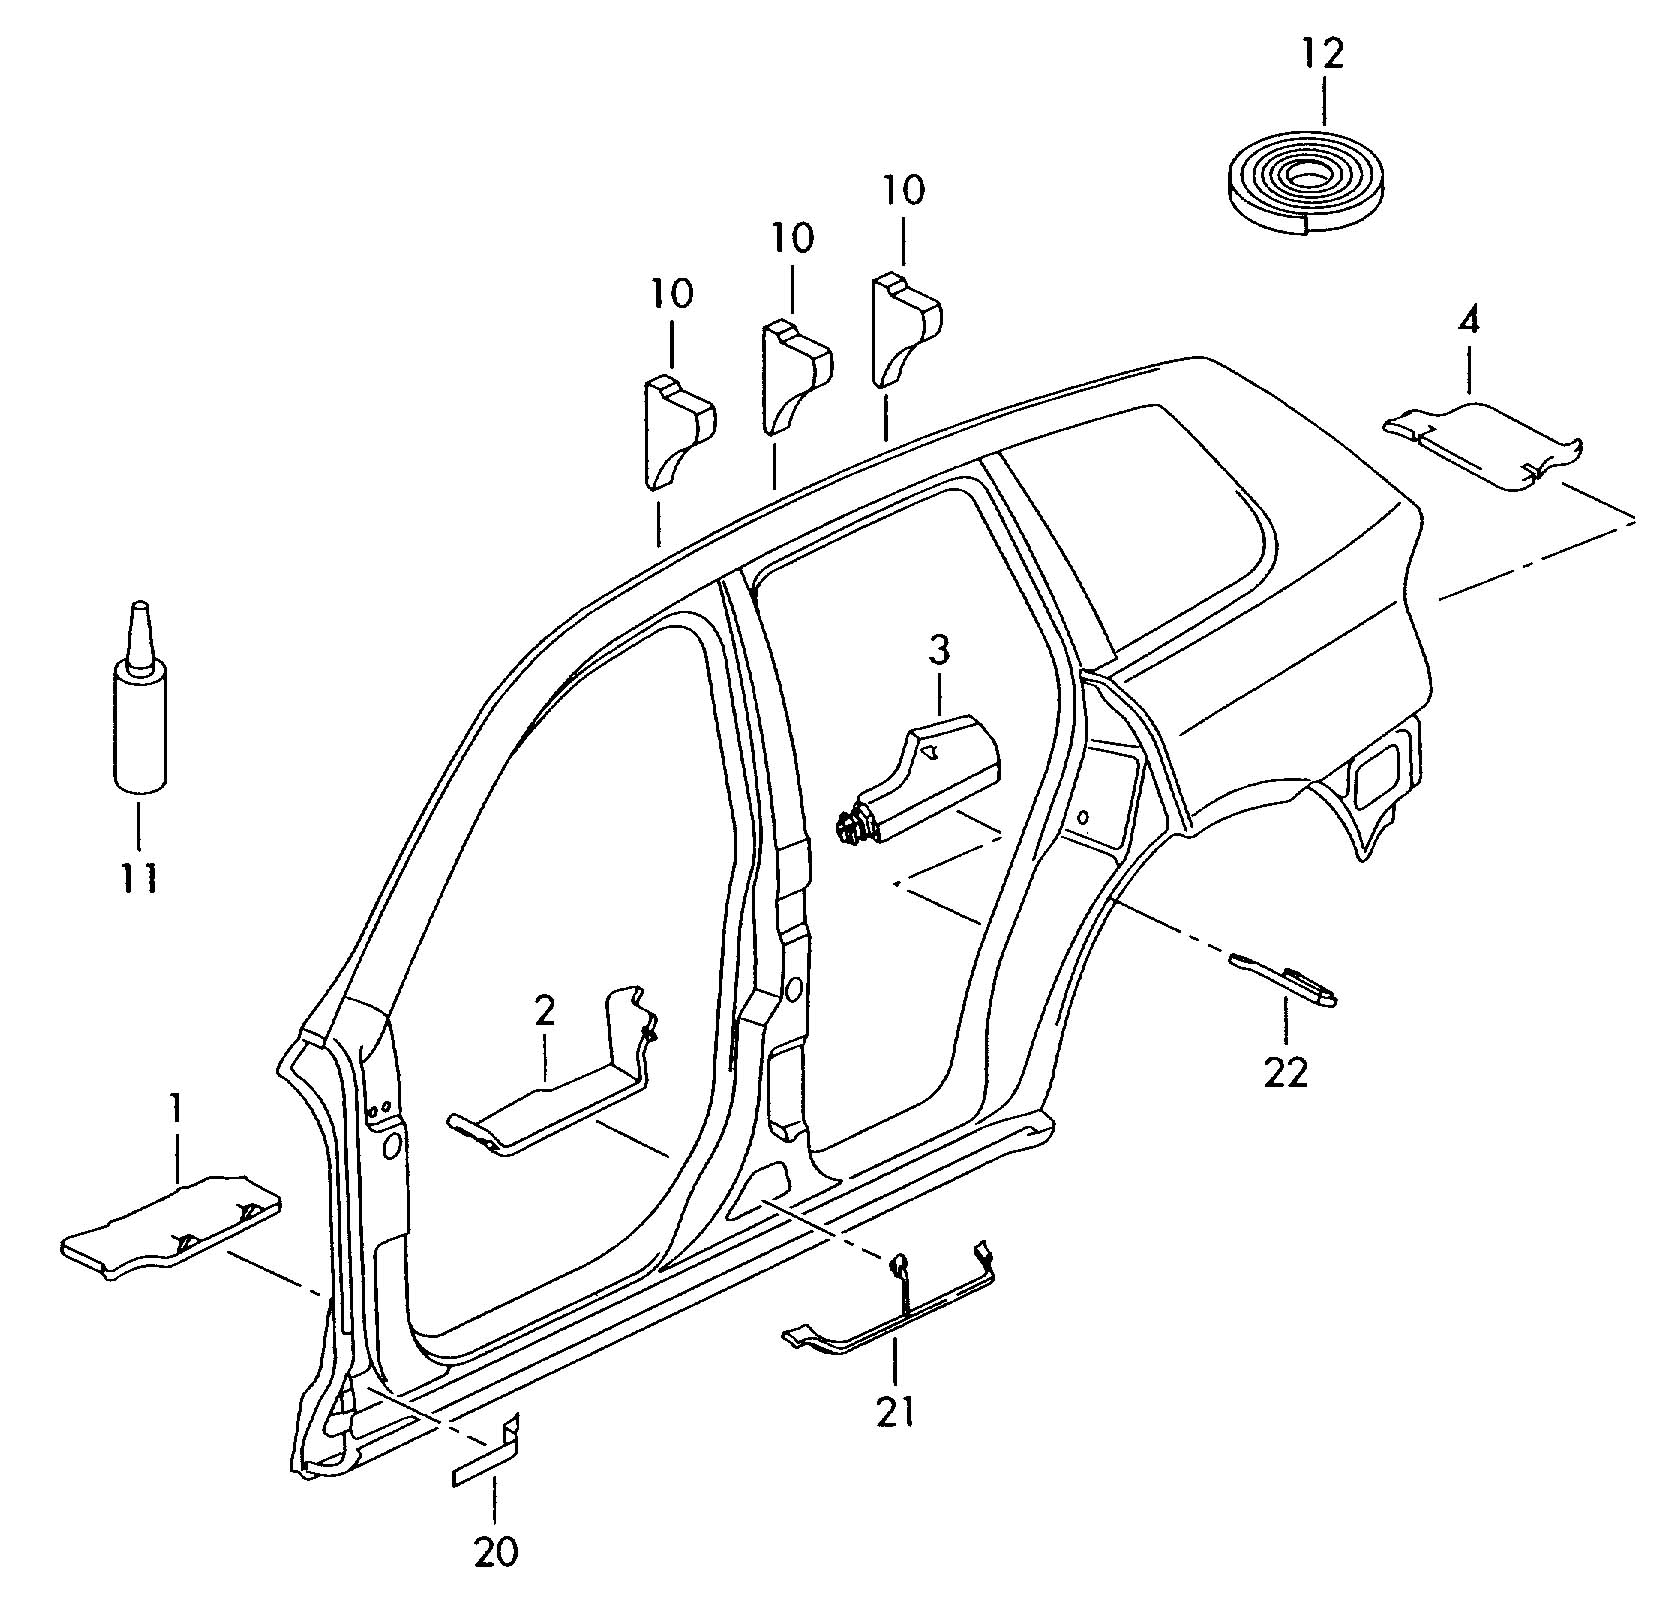 Volkswagen Touareg To Fit Use Workshop Material Sound